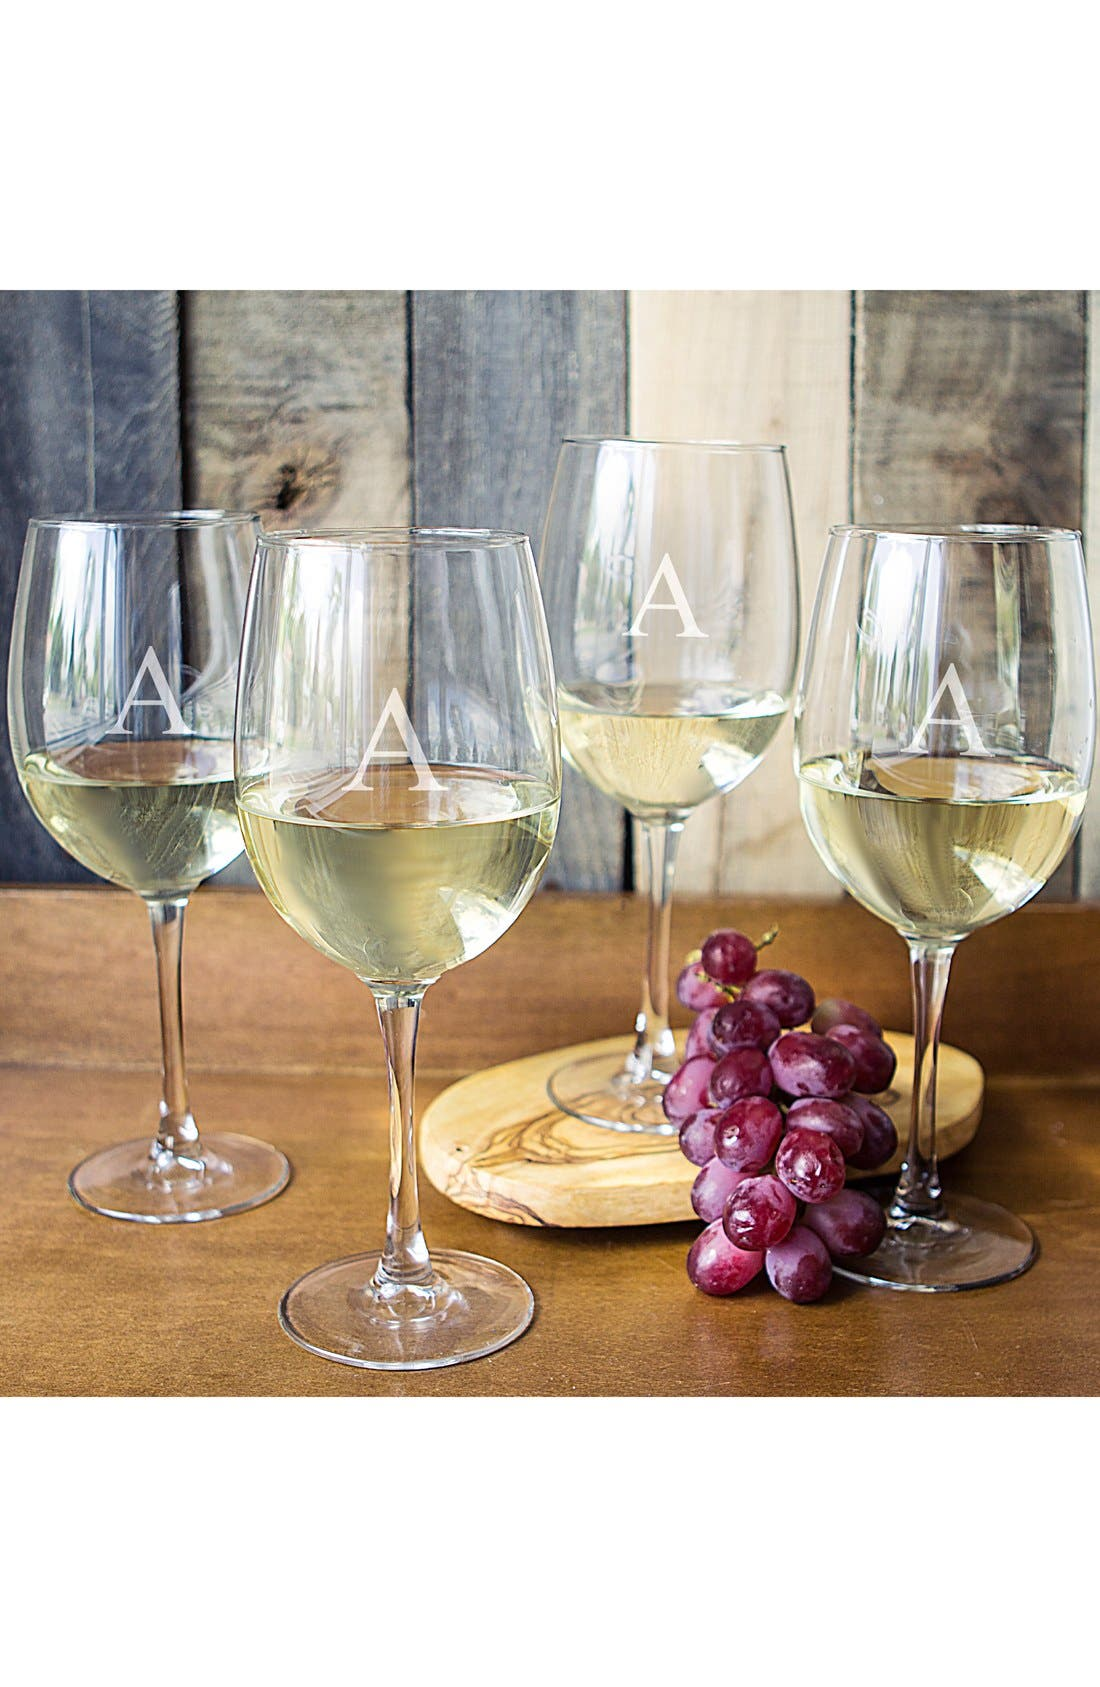 Set of 4 Personalized White Wine Glasses,                             Main thumbnail 1, color,                             960